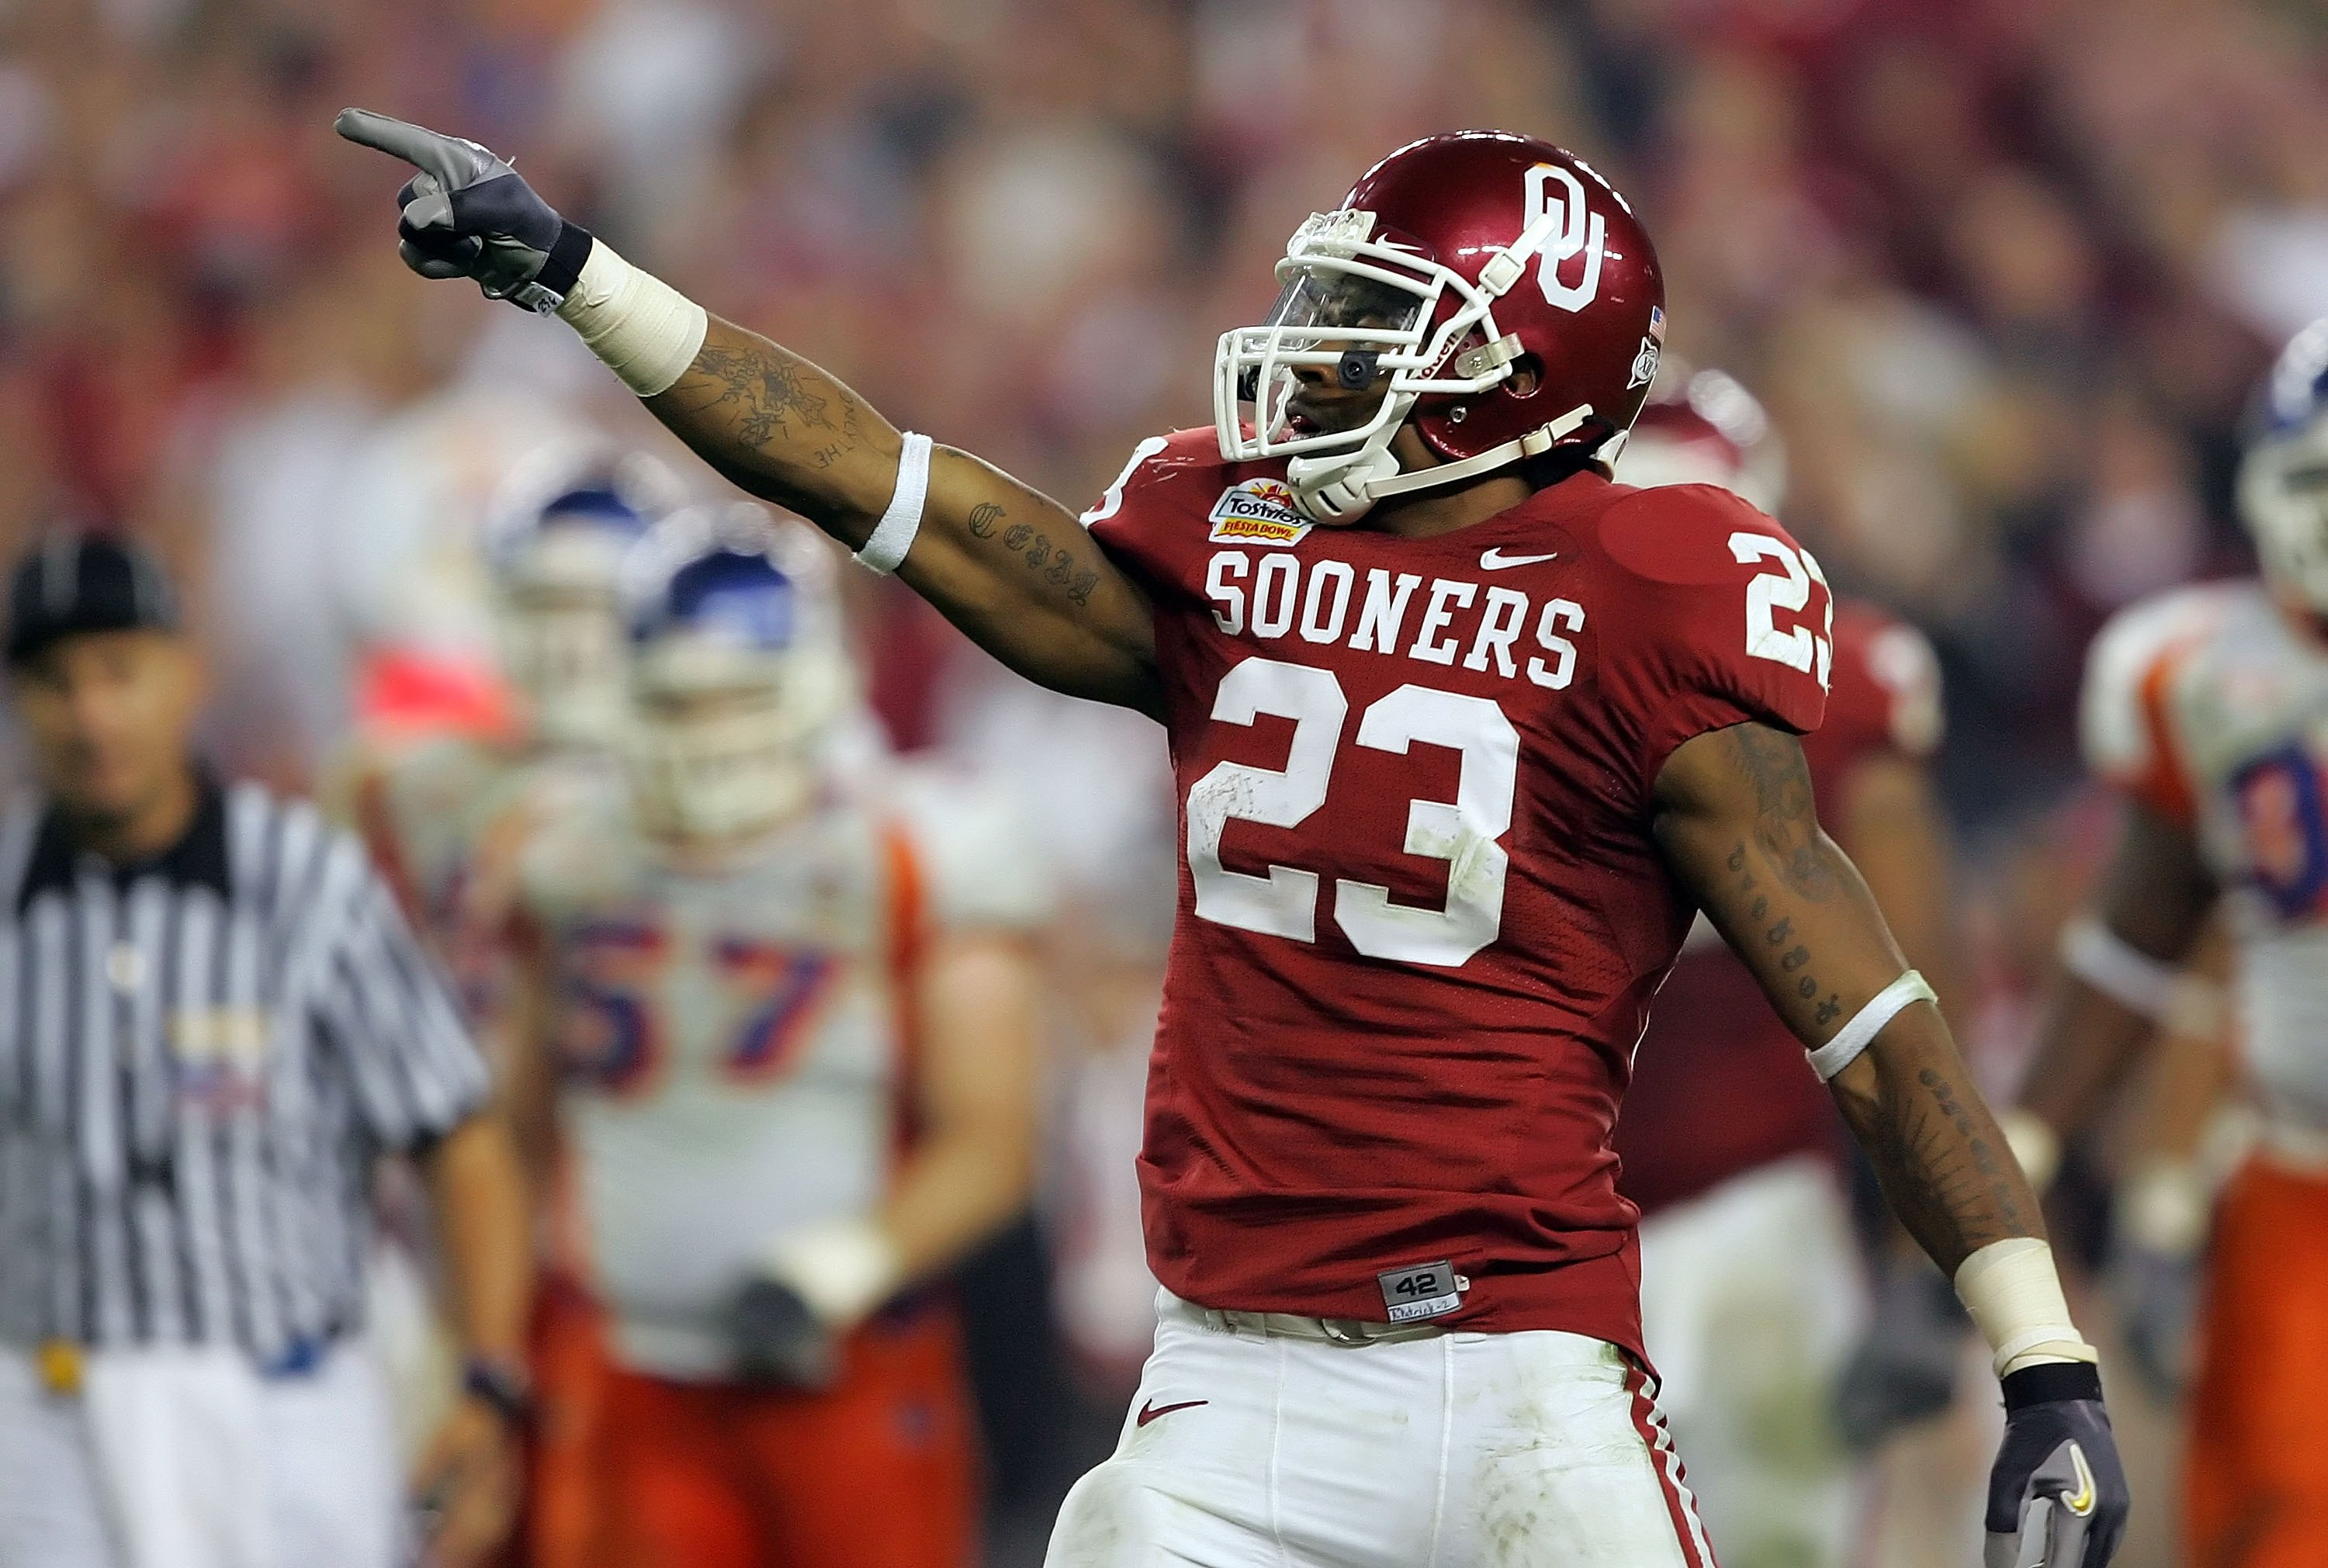 GLENDALE, AZ - JANUARY 01:  Running back Allen Patrick #23 of the Oklahoma Sooners points after getting a first down against the Boise State Broncos at the Tostito's Fiesta Bowl at University of Phoenix Stadium on January 1, 2007 in Glendale, Arizona.  Th